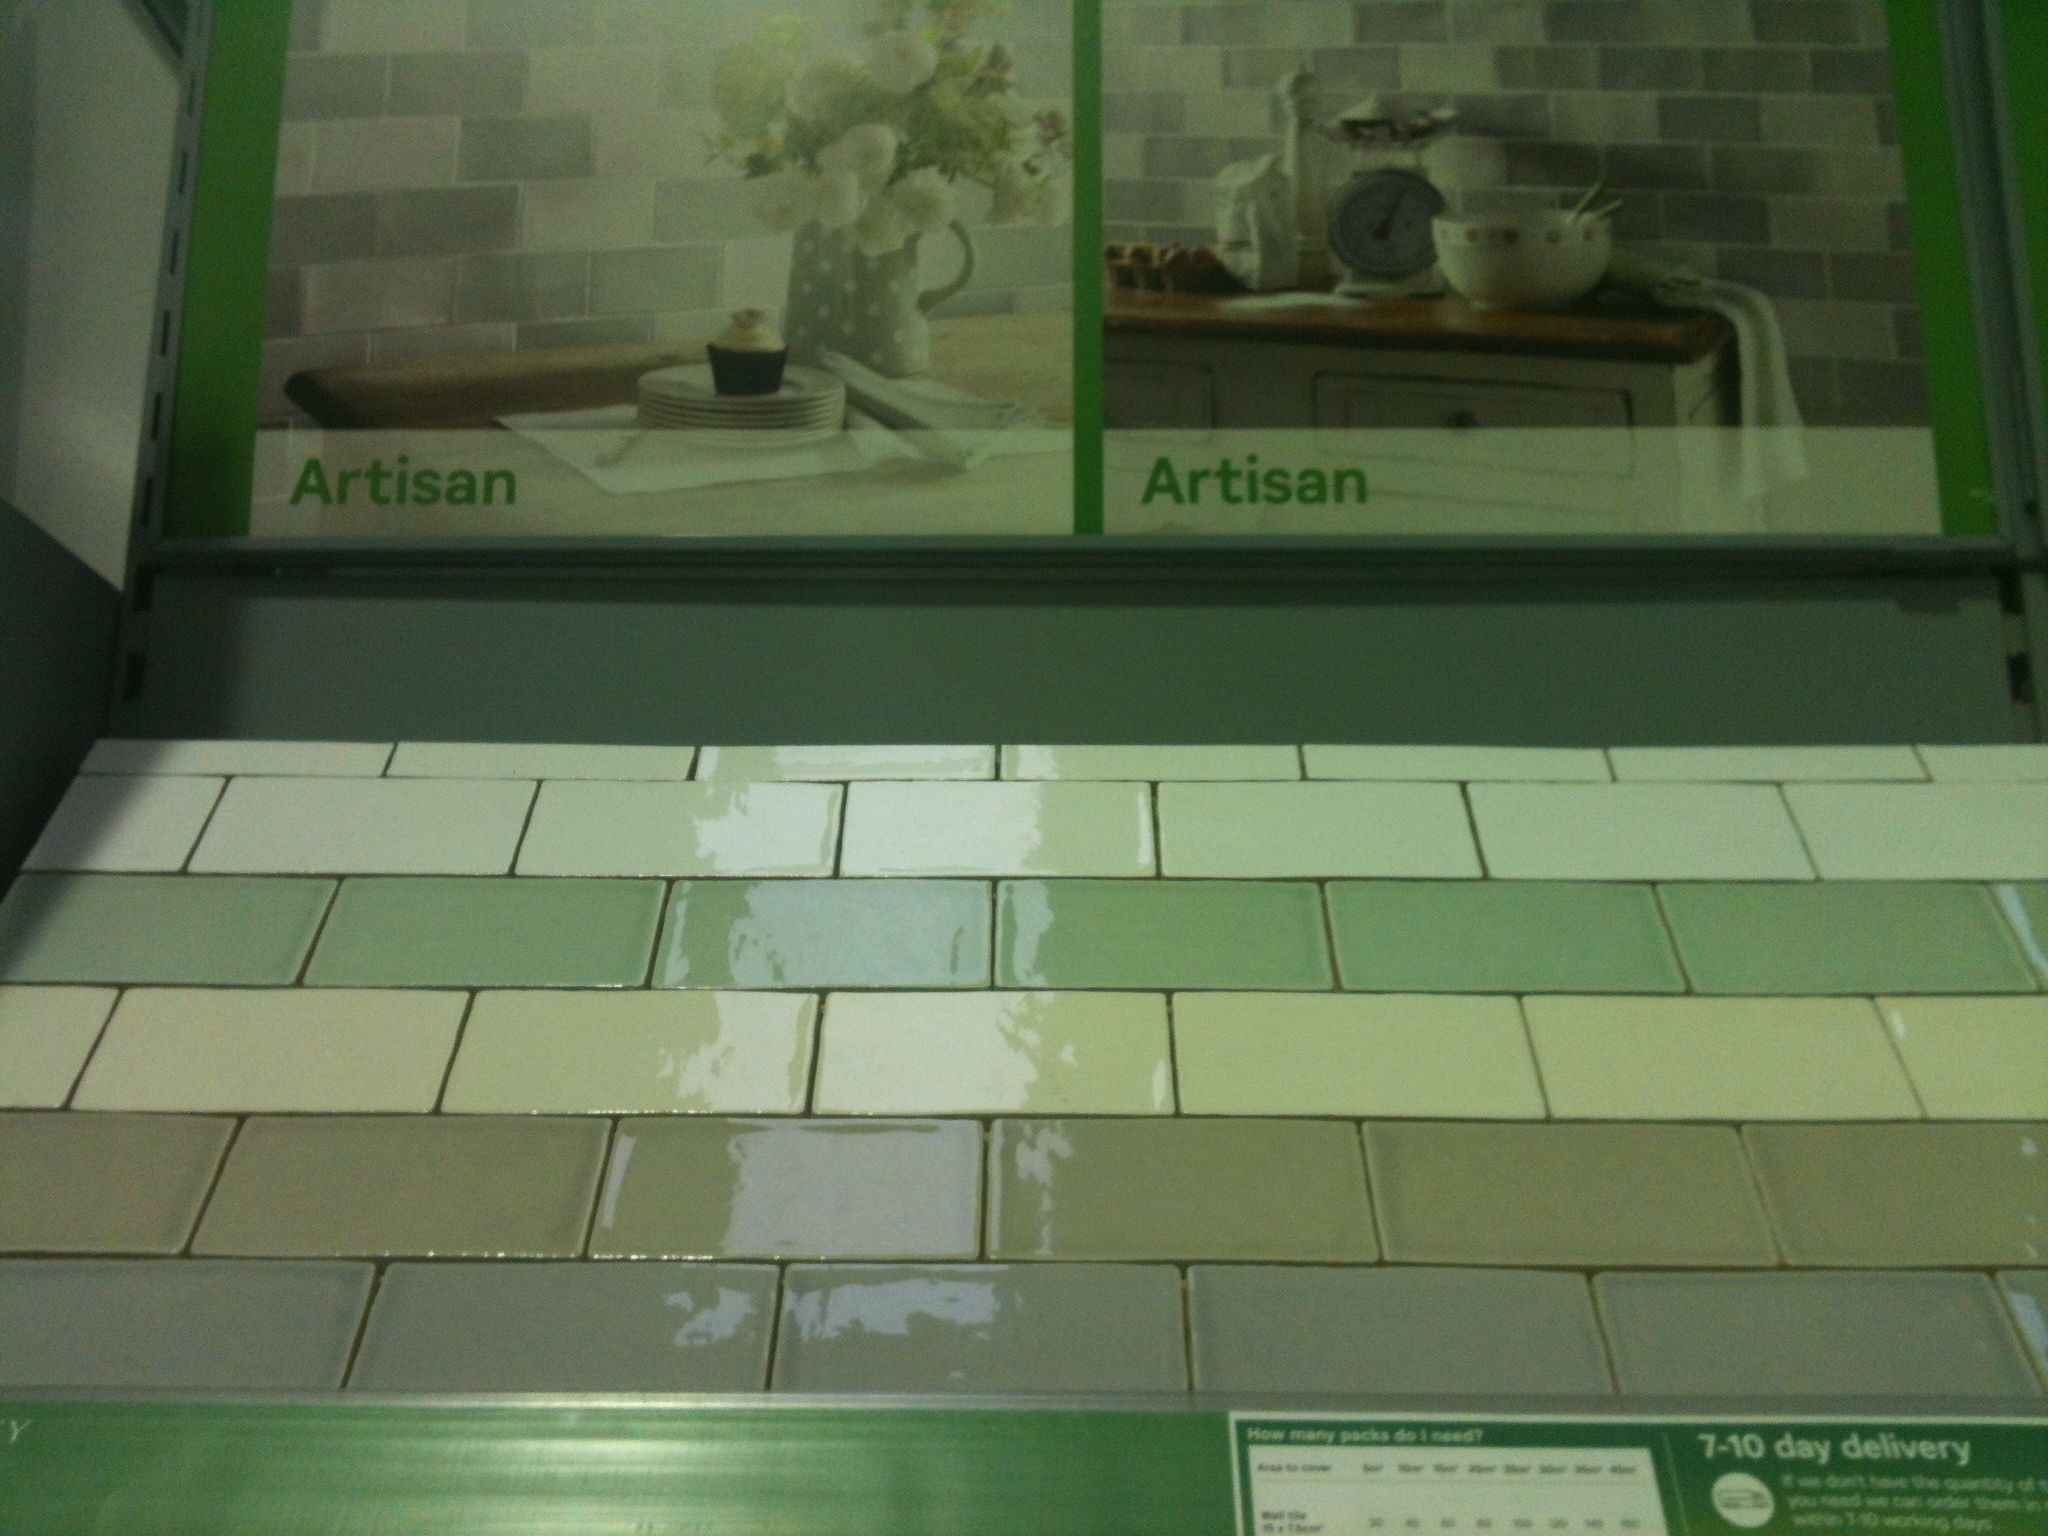 Homebase laura ashley artisan tiles these are expensive but lovely homebase laura ashley artisan tiles these are expensive but lovely may have to do dailygadgetfo Choice Image